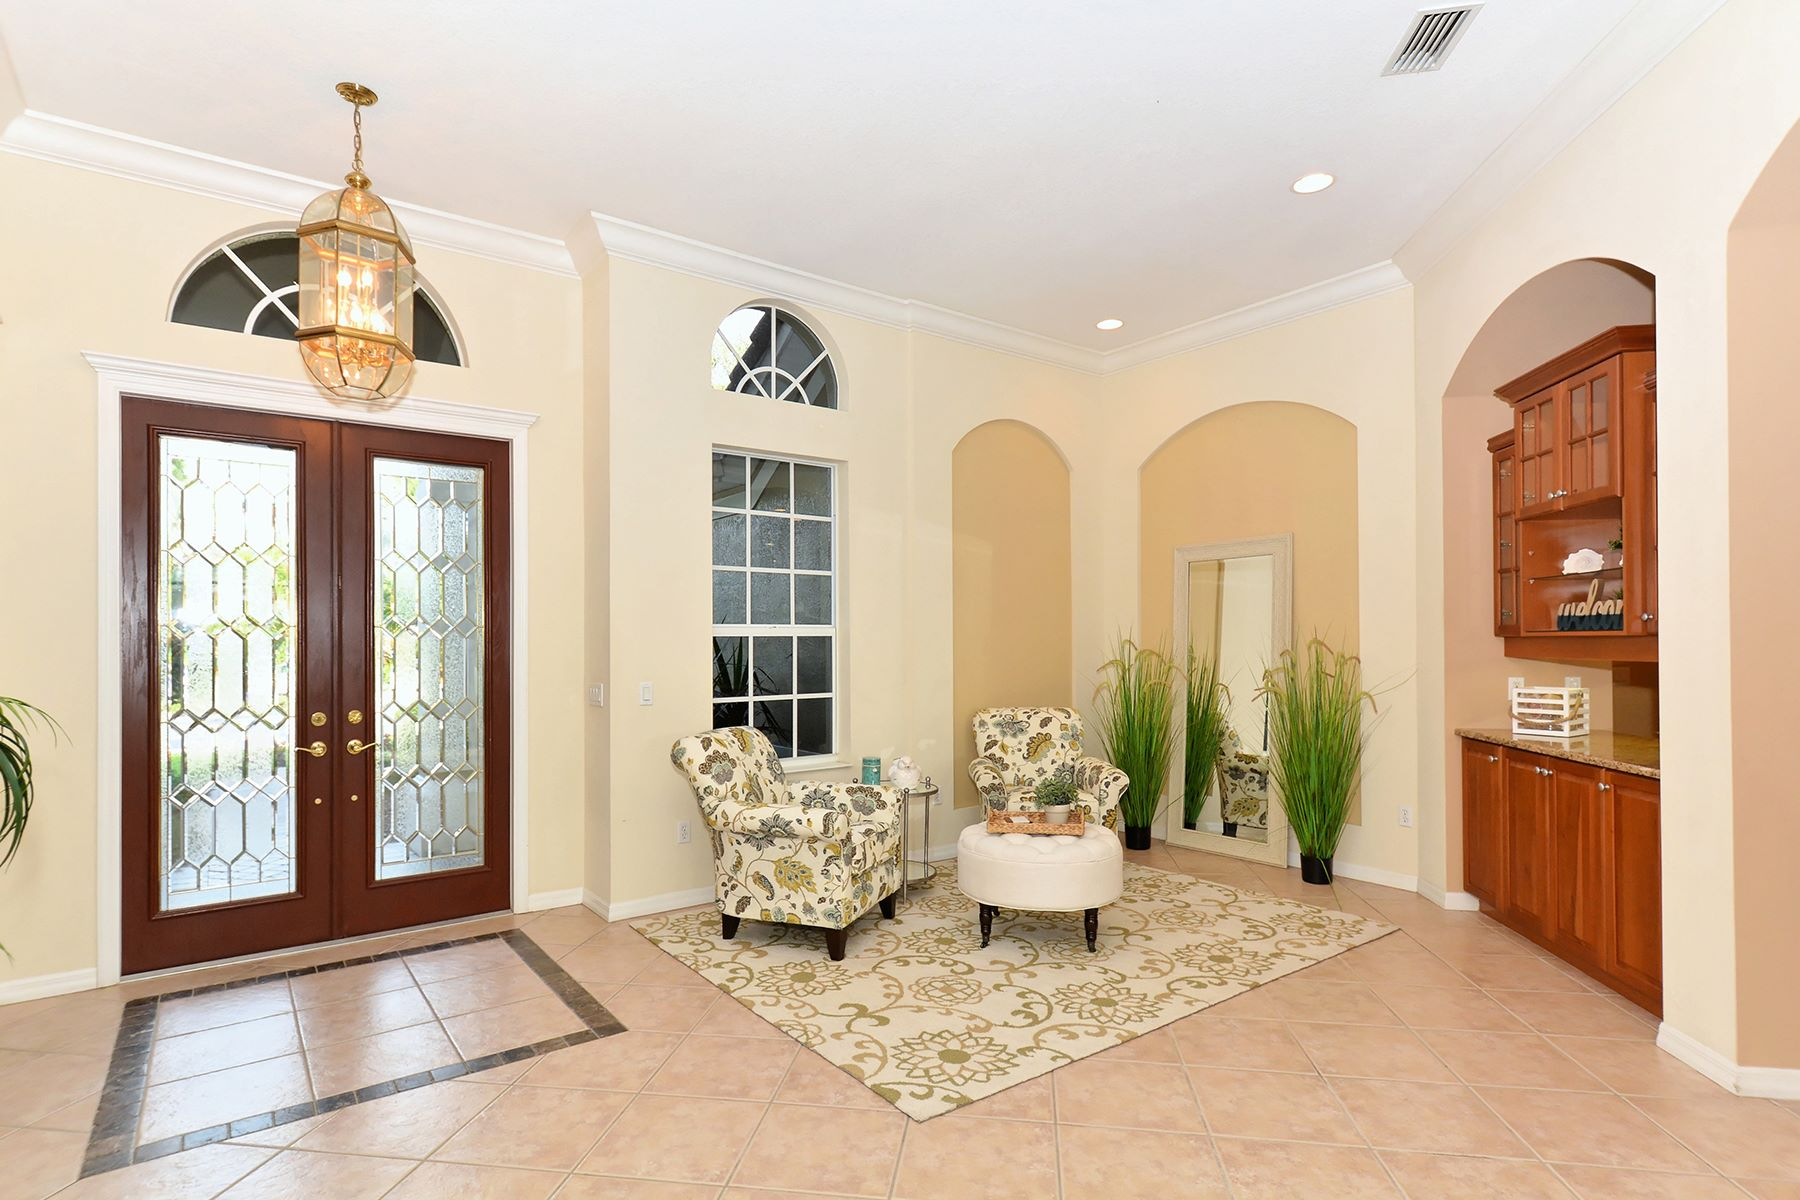 Single Family Home for Sale at LAKEWOOD RANCH 13404 Blythefield Terr Lakewood Ranch, Florida, 34202 United States